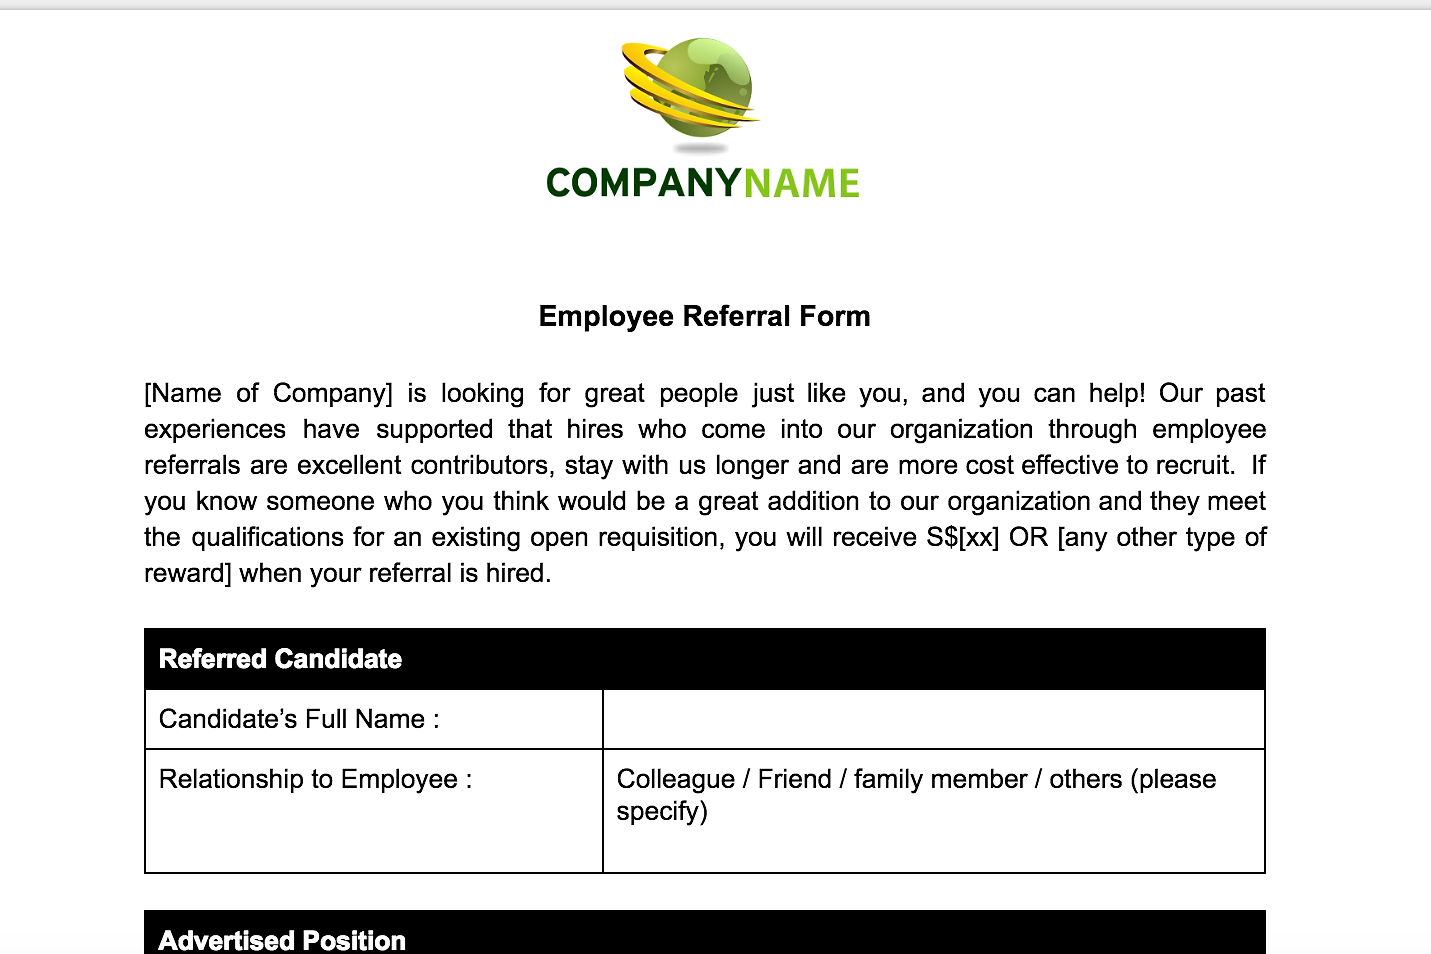 Employee Referral Process And Form